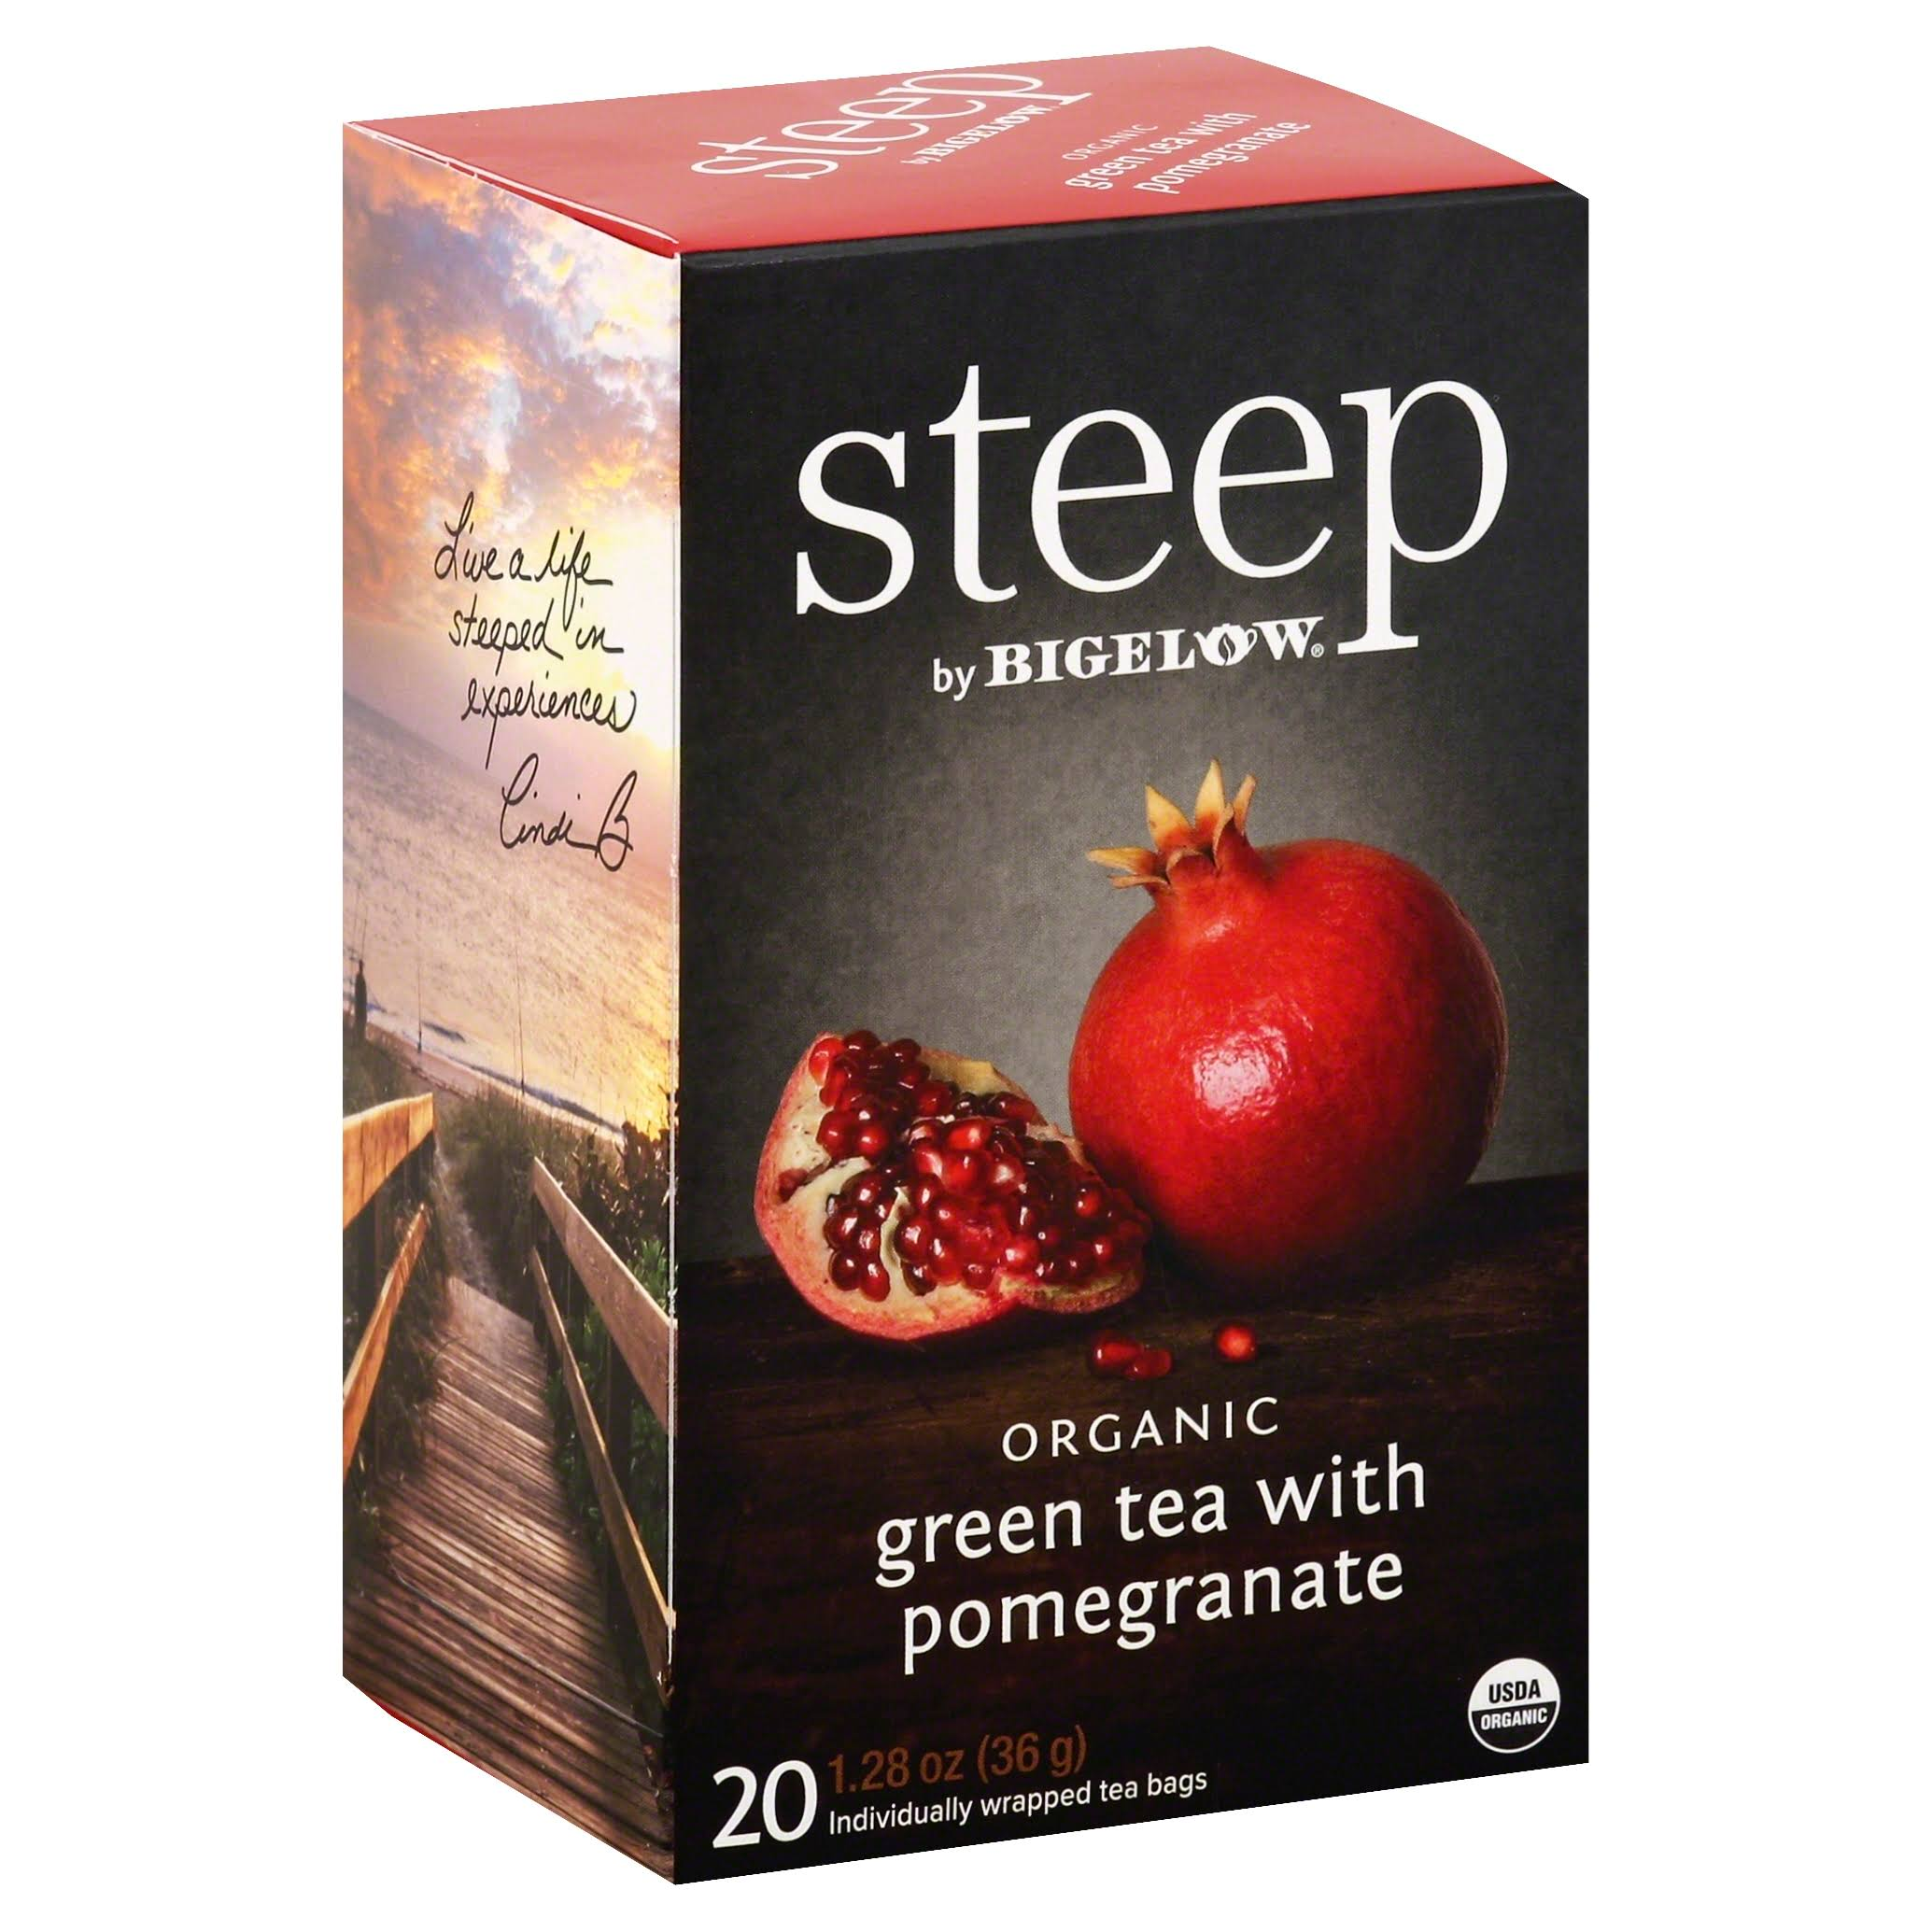 Bigelow Steep Organic Green Tea - Pomegranate, 20ct